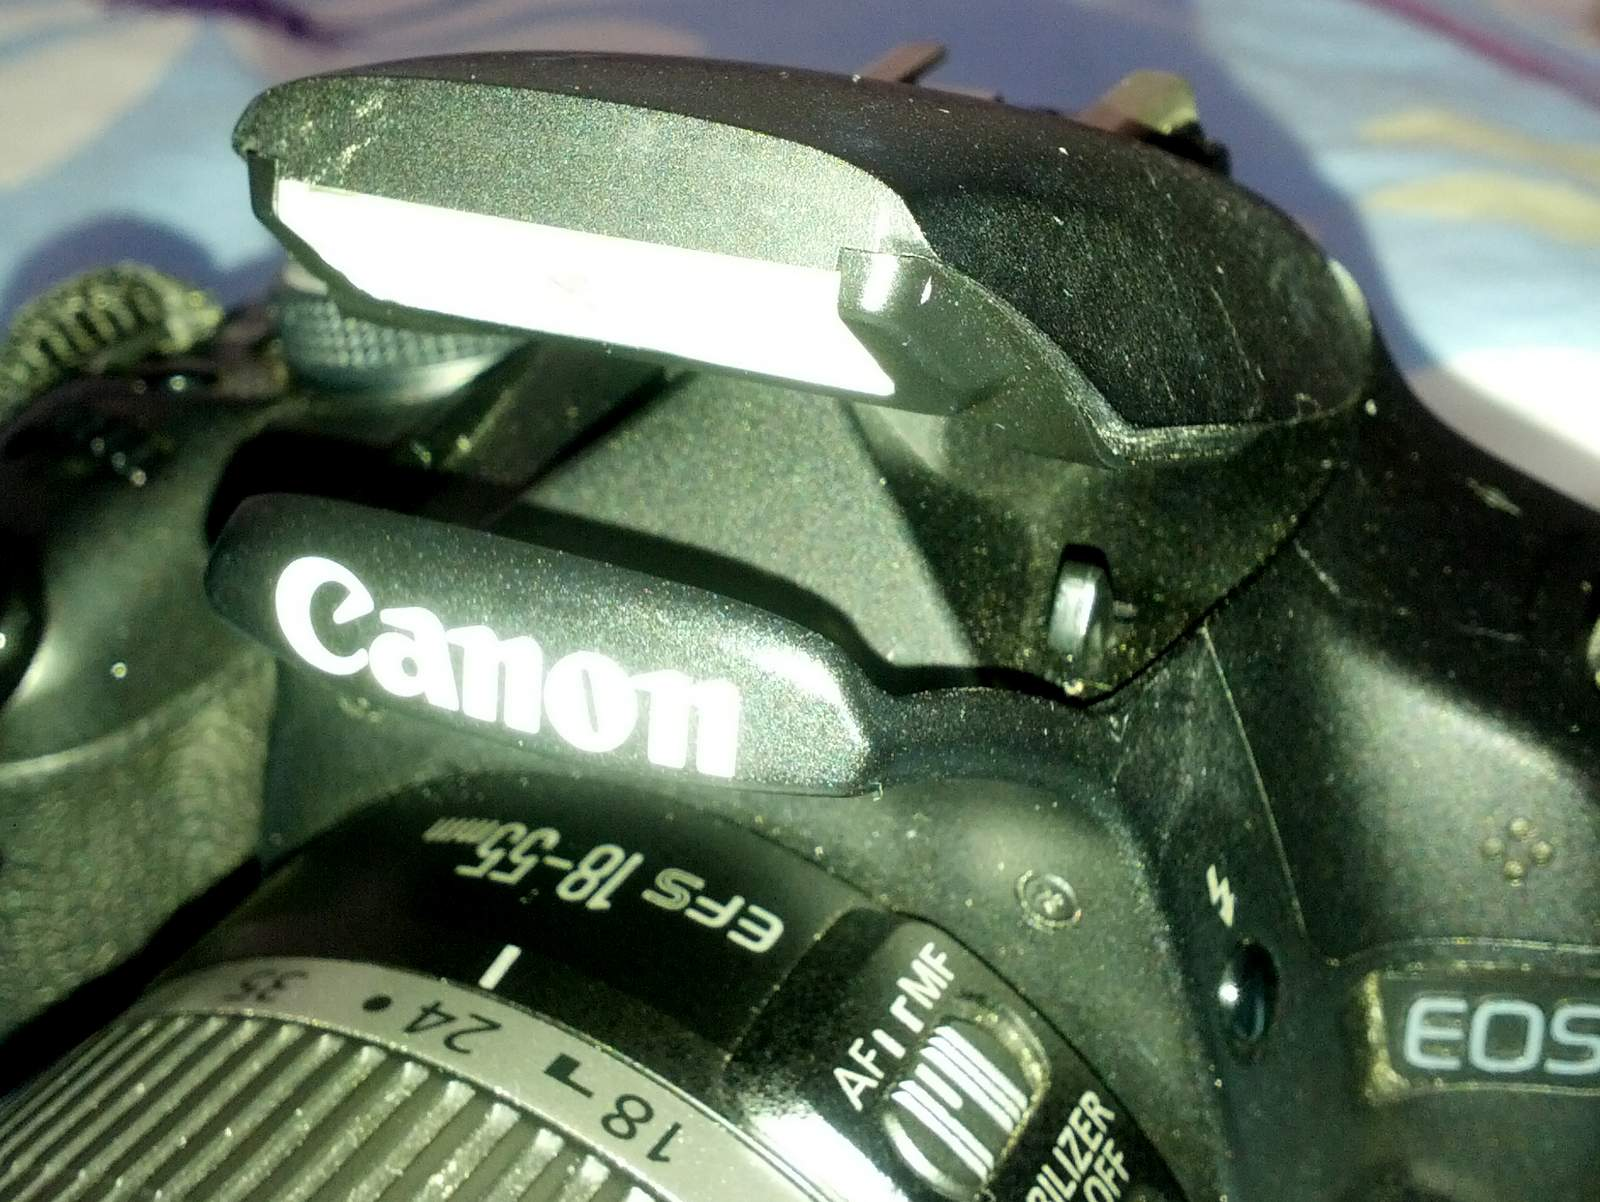 How to fix the popup flash on your camera (Canon DSLR